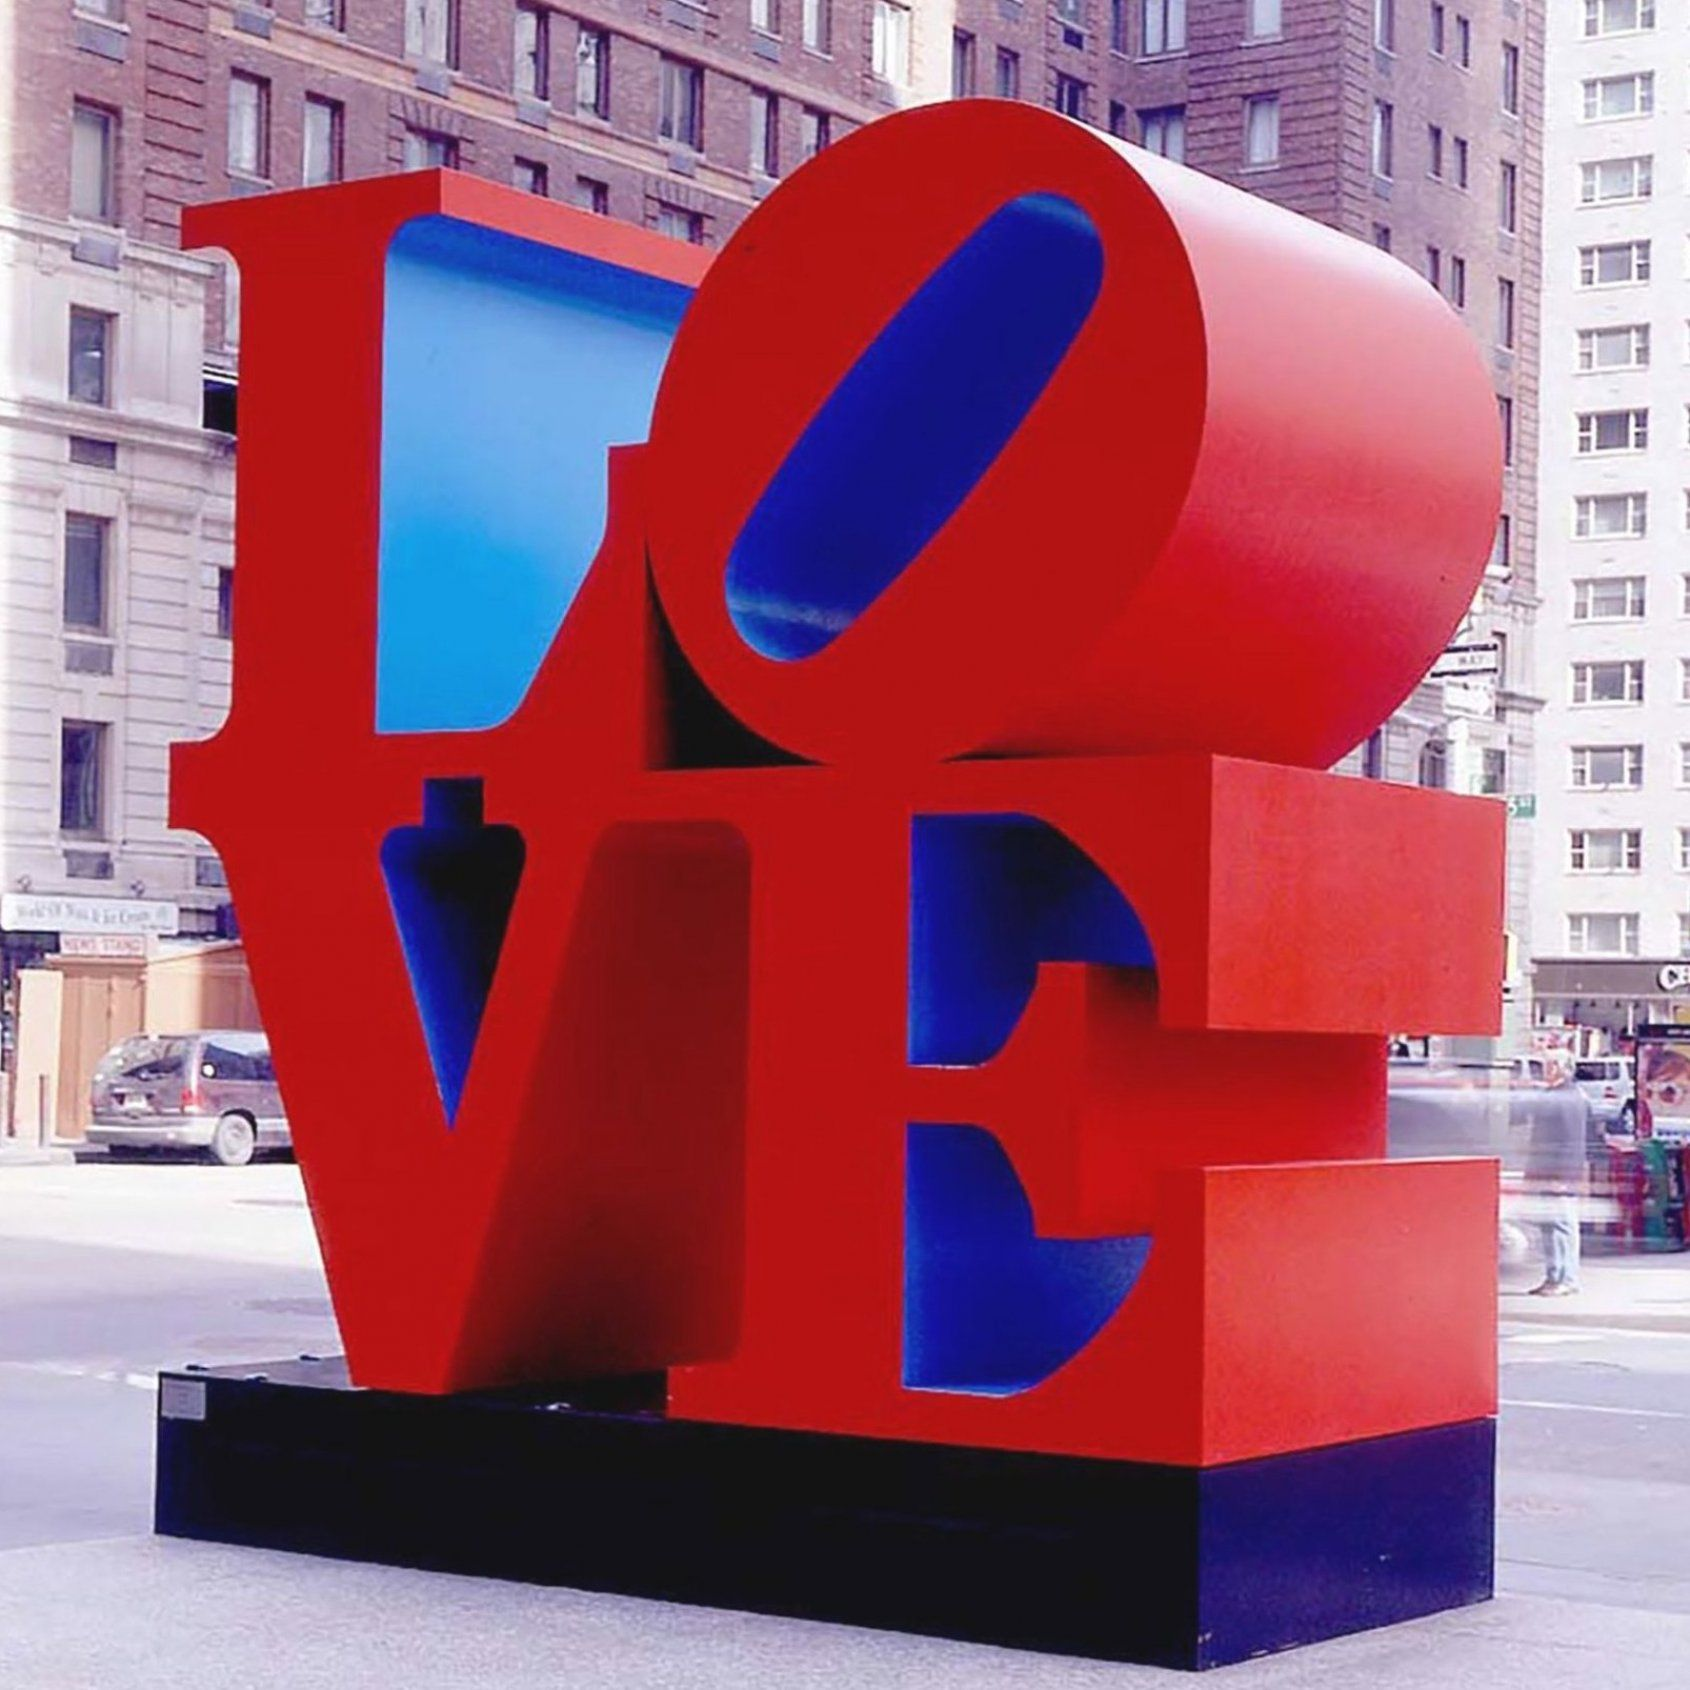 Love  Sixth Avenue of New York  by Robert Indiana  an American costume designer  painter  sculptor  and stamp designer associated with the Pop Art movement  The most popular pieces of his career are the series made with the word LOVE  #PoppingFridayInArtHouse #FindingMusesInArtHouse #art #artcollector #artist #artlife #artlovers #artwork #contemporaryart #creative #love #manhattan #modernart #nyc #robertindiana #sculpture #visualart #       #       #